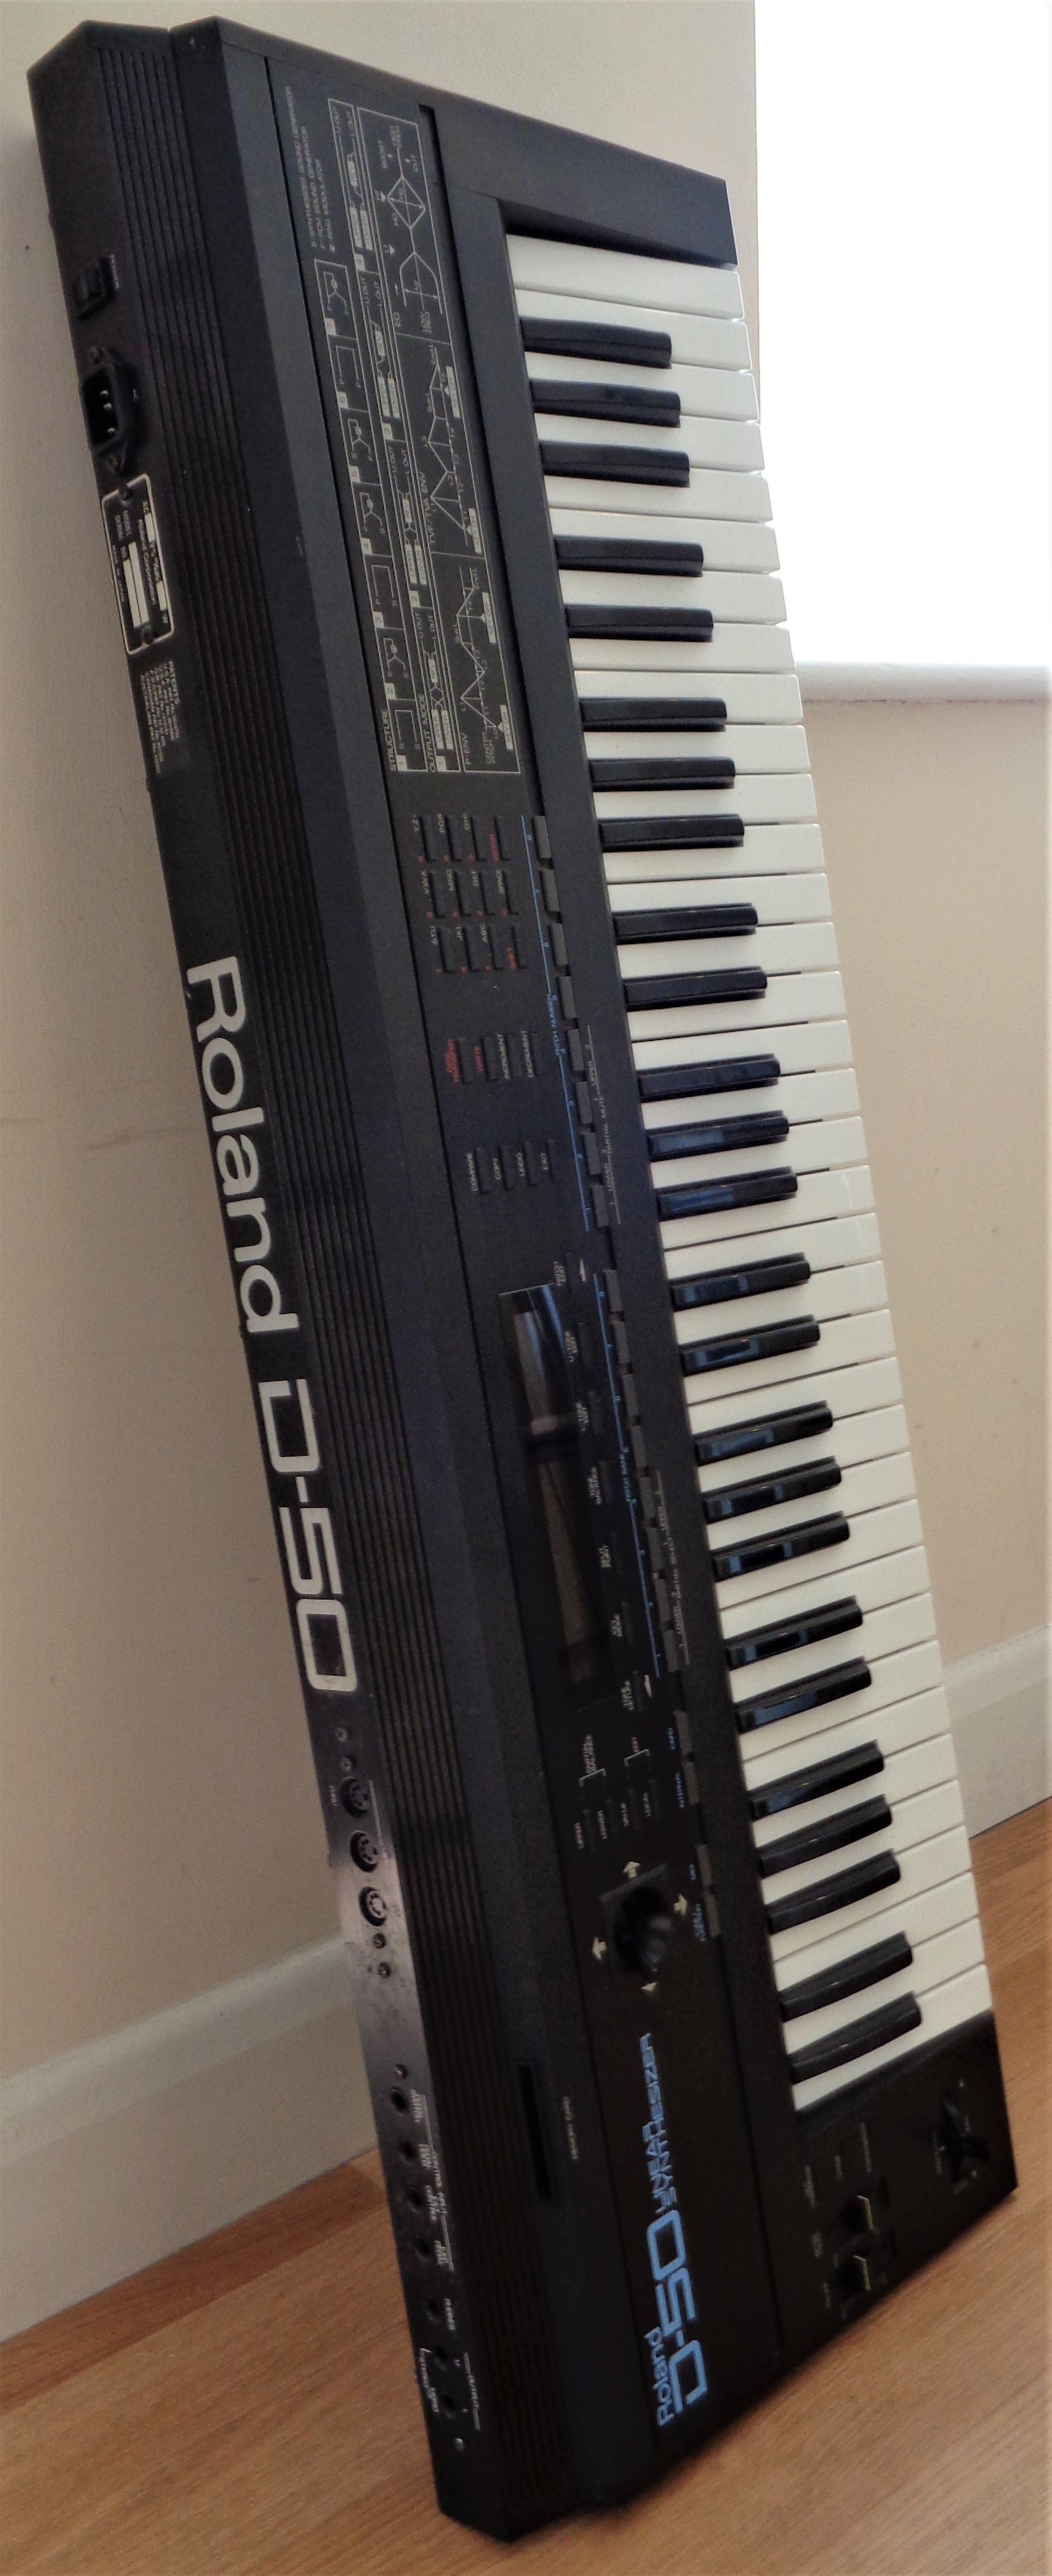 Roland D 50 Controller Design Synthesizer Keyboard